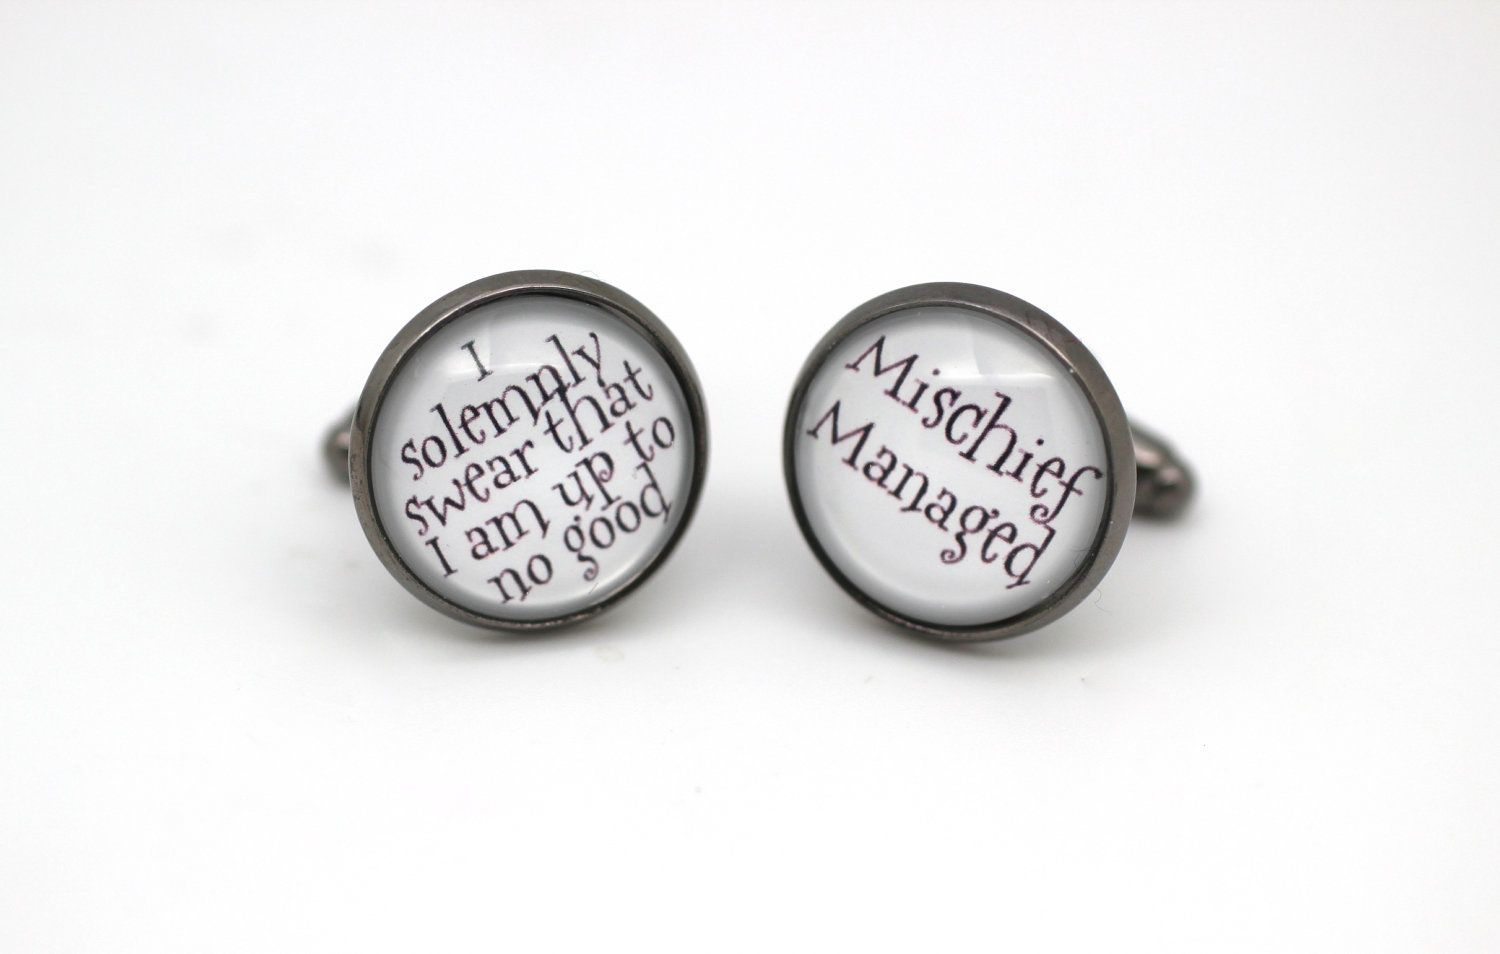 Harry potter i solemnly swear mischief managed cuff